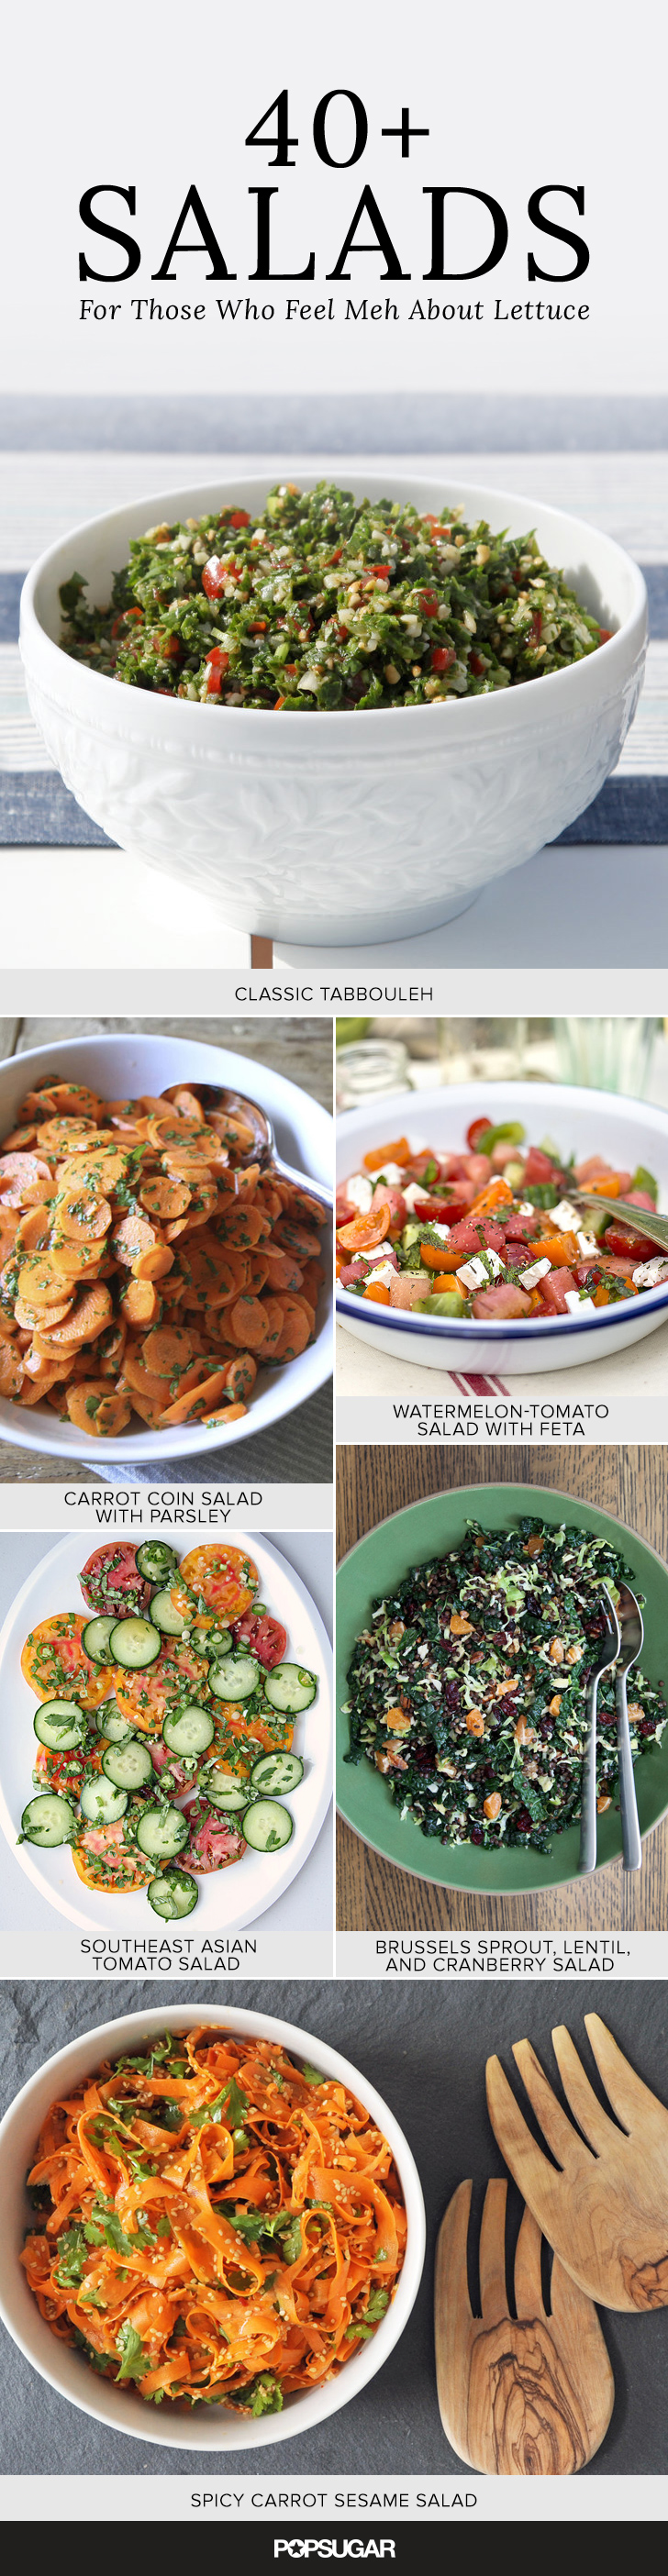 More Than 40 Salads For Those Who Feel Meh About Lettuce